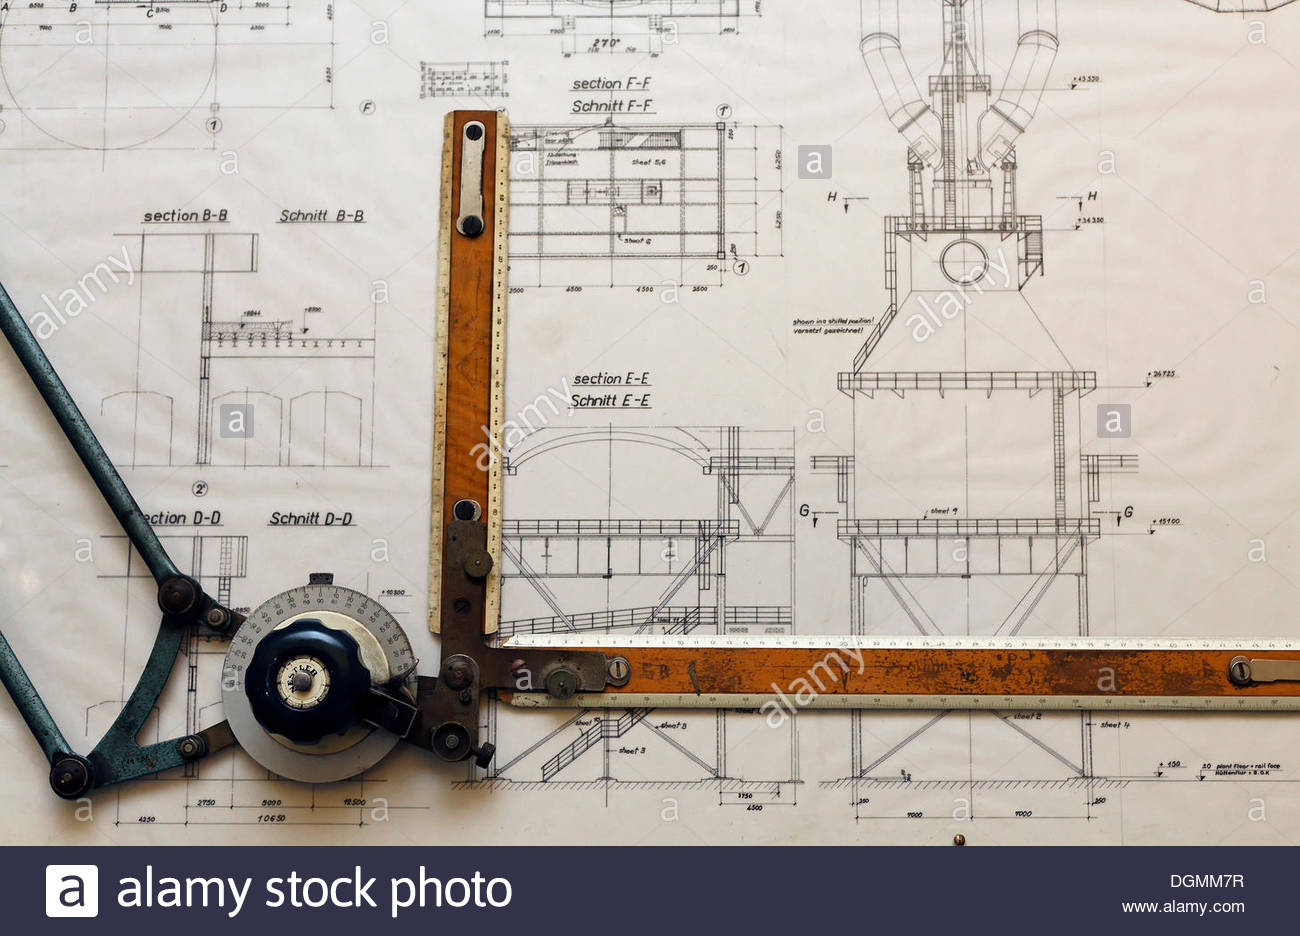 Furnace Drawing At Free For Personal Use Hvac Design And 1300x936 Of A Dust Catcher Blast